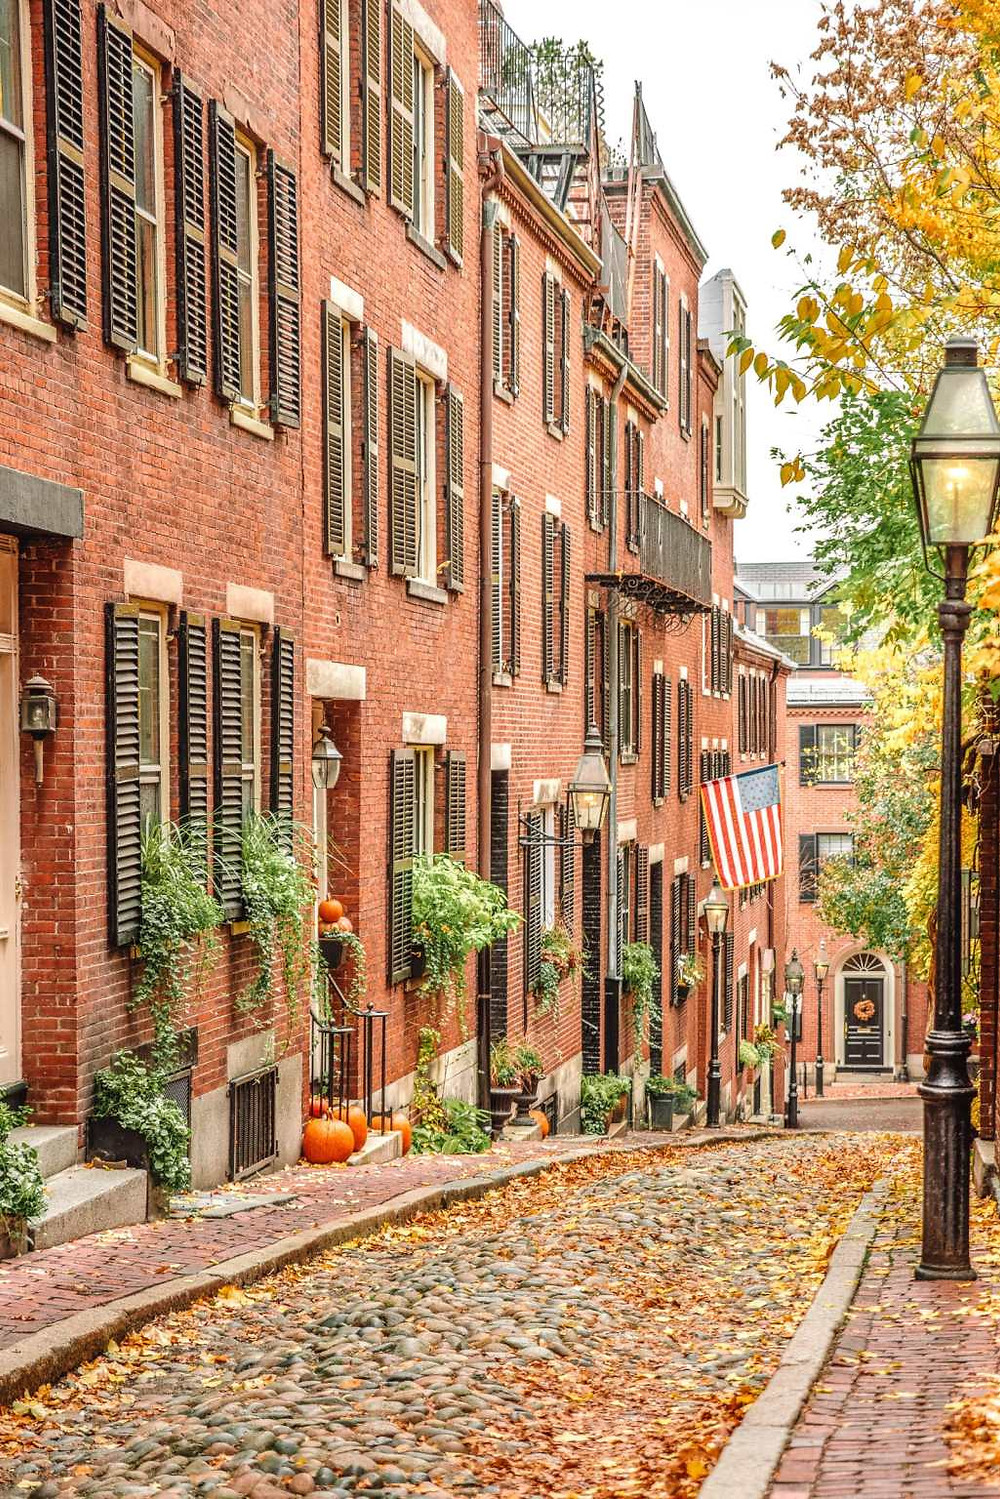 picturesque Acorn Street on Beacon Hill